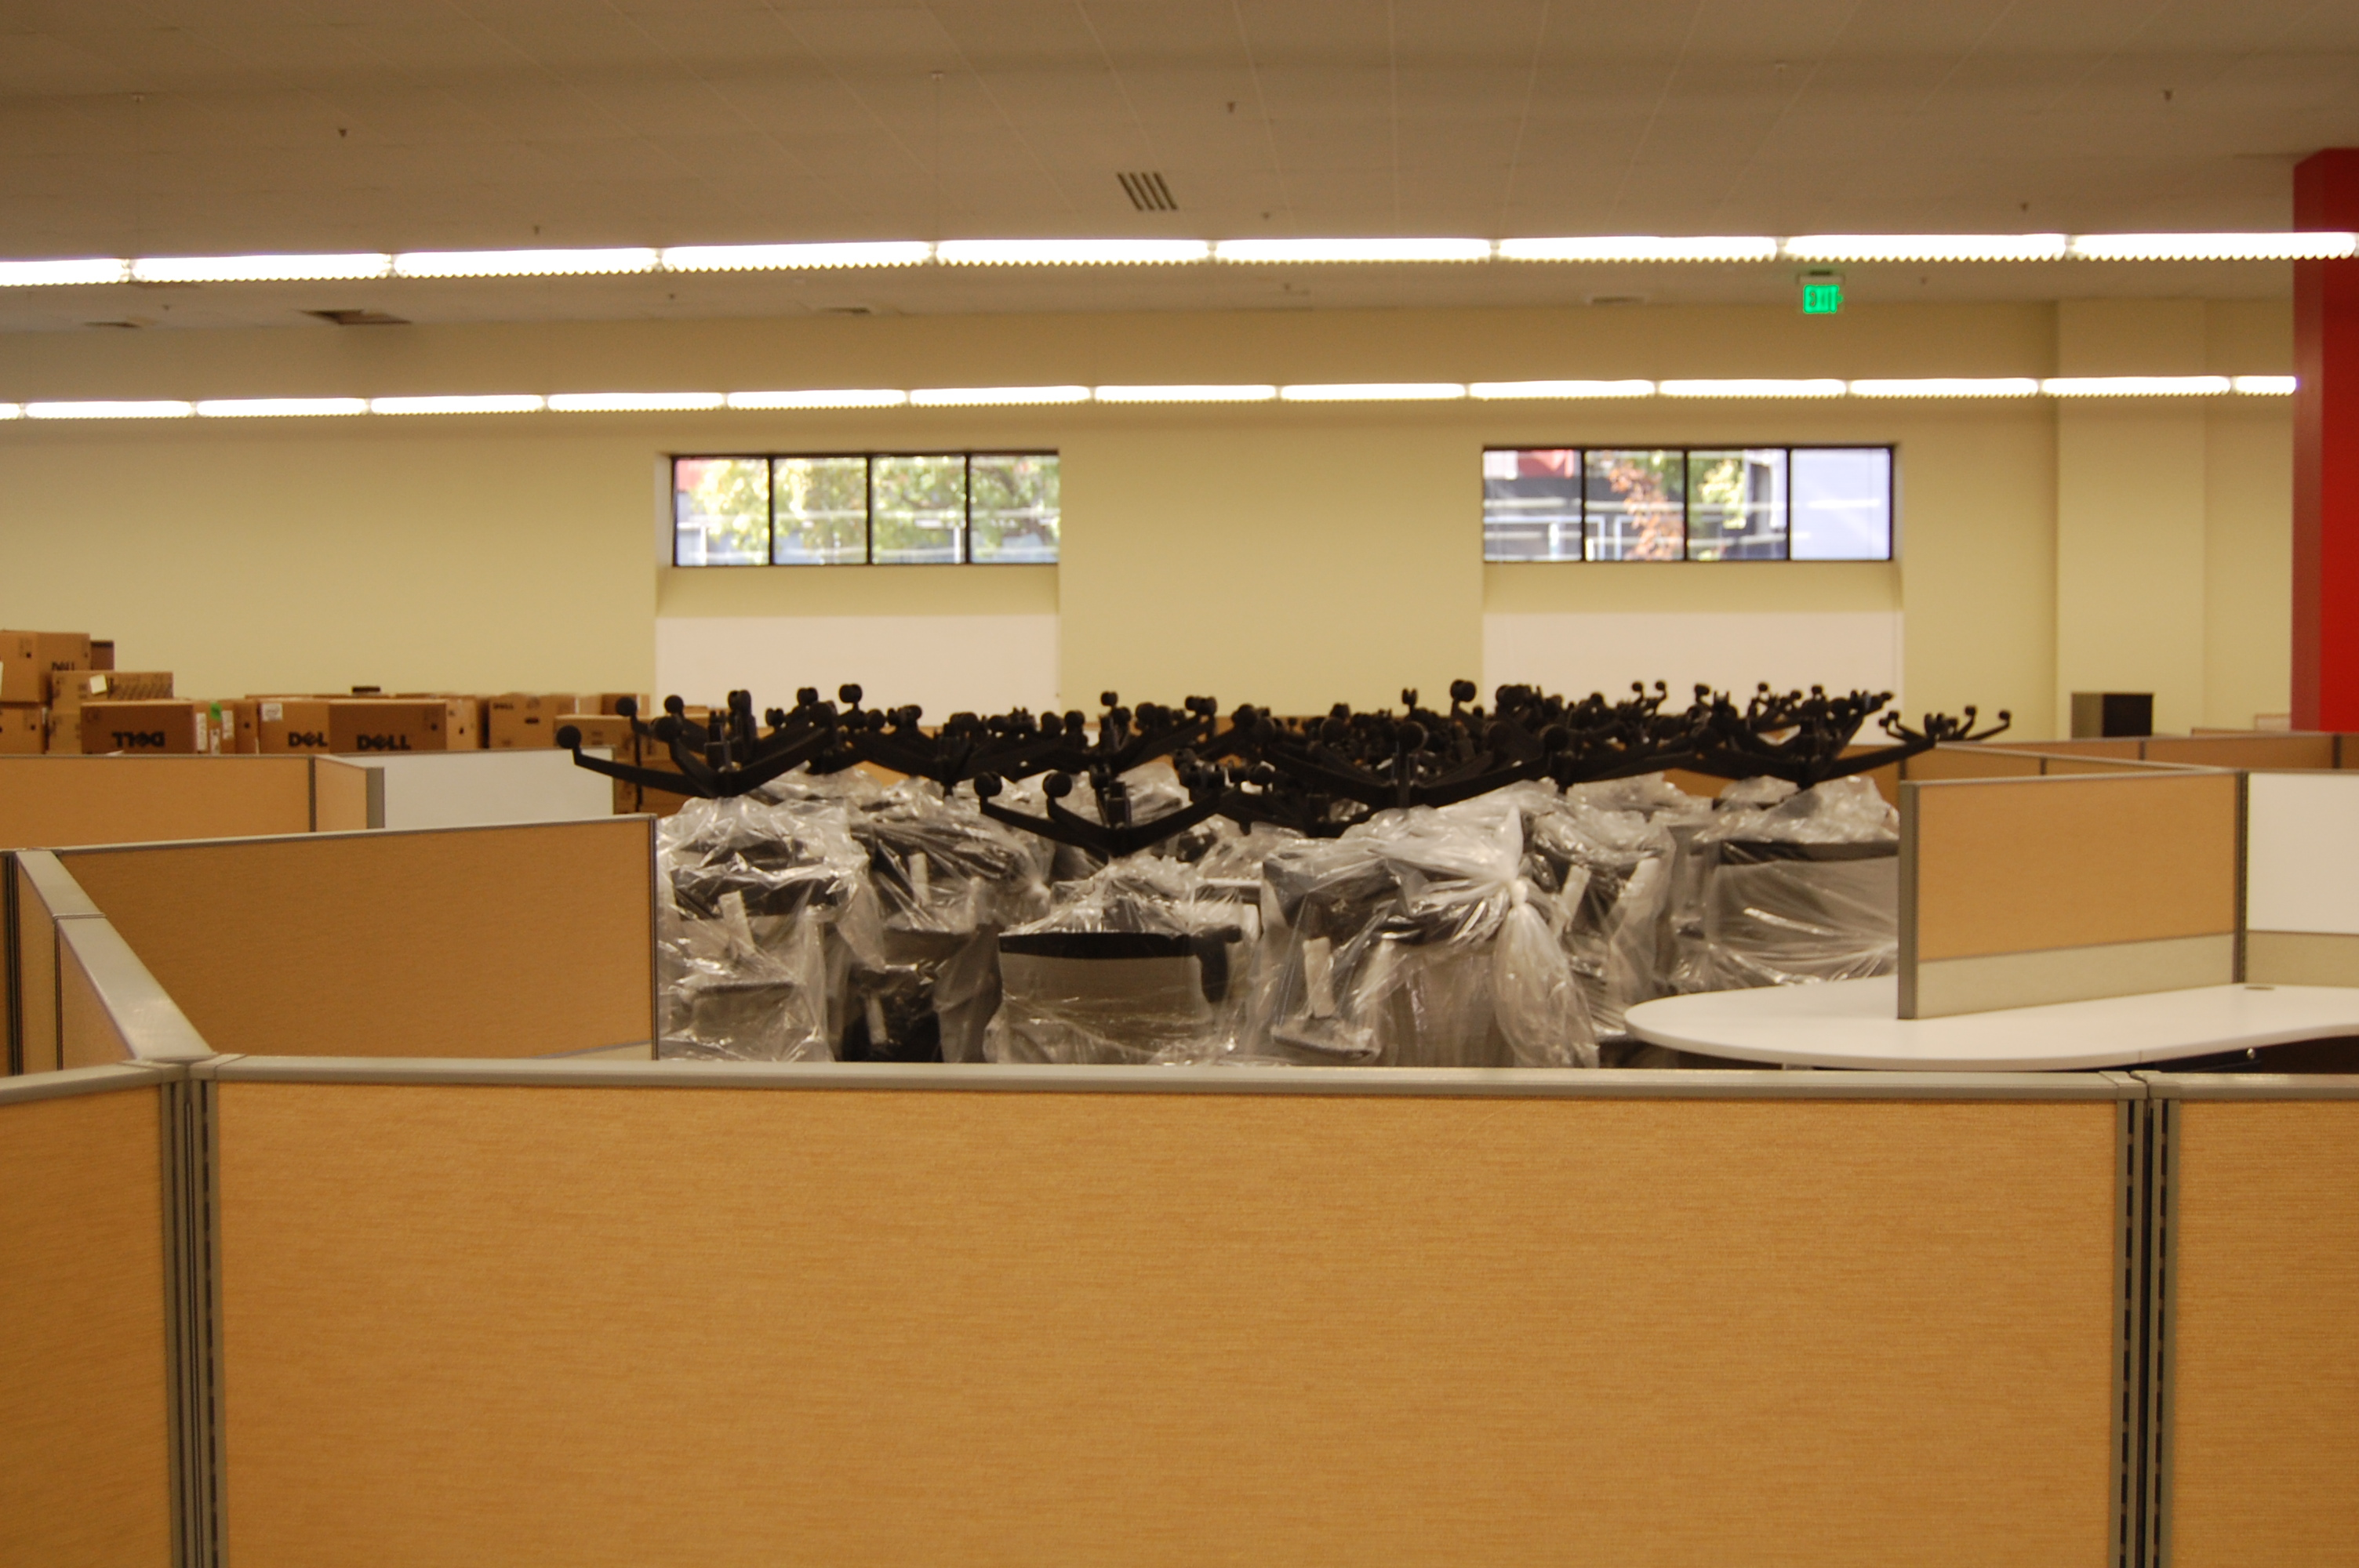 cubicle-installation (2)